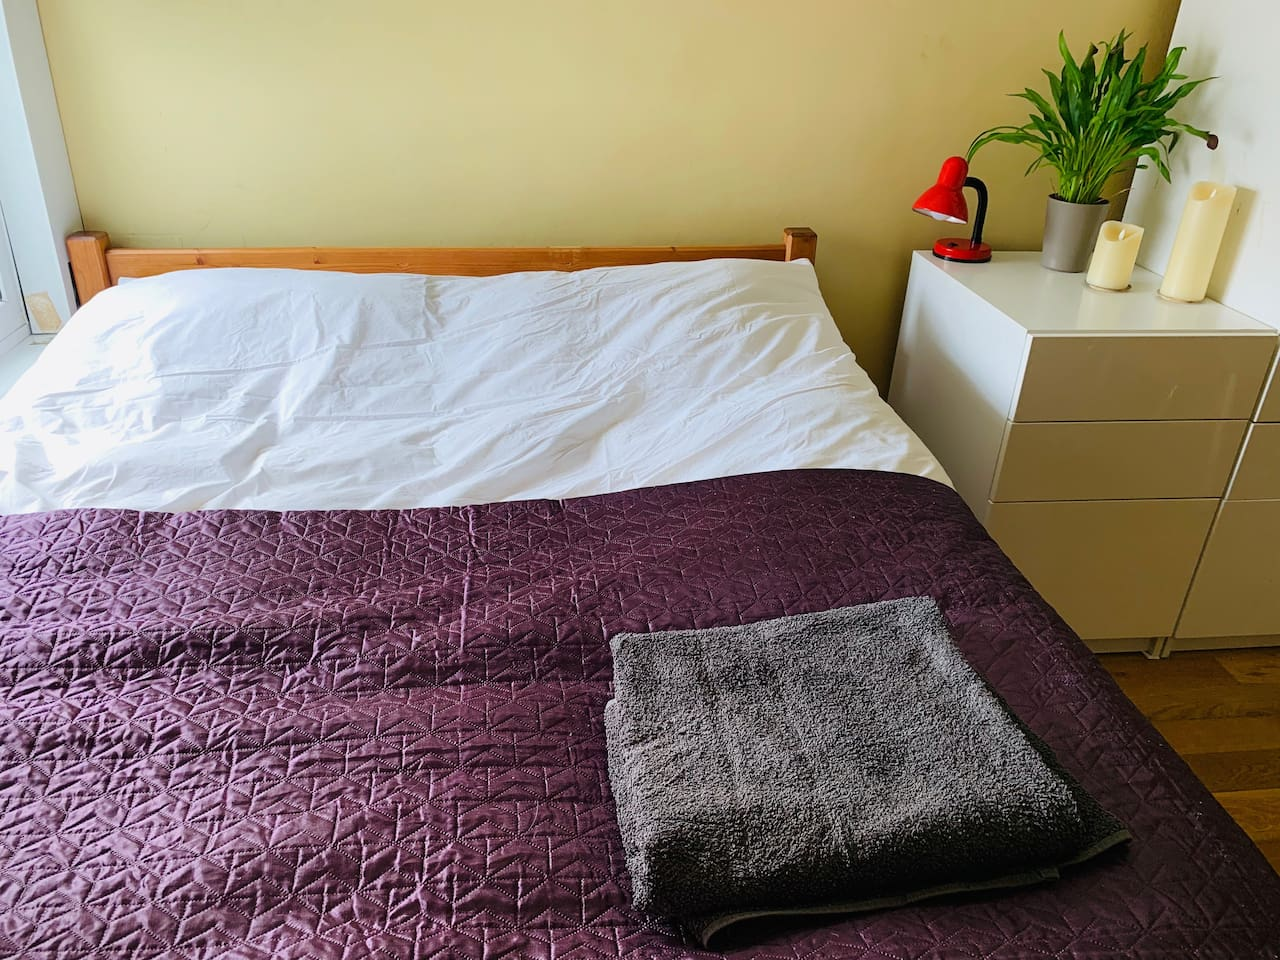 Kingsize Bed with good quality feather pillows and duvet